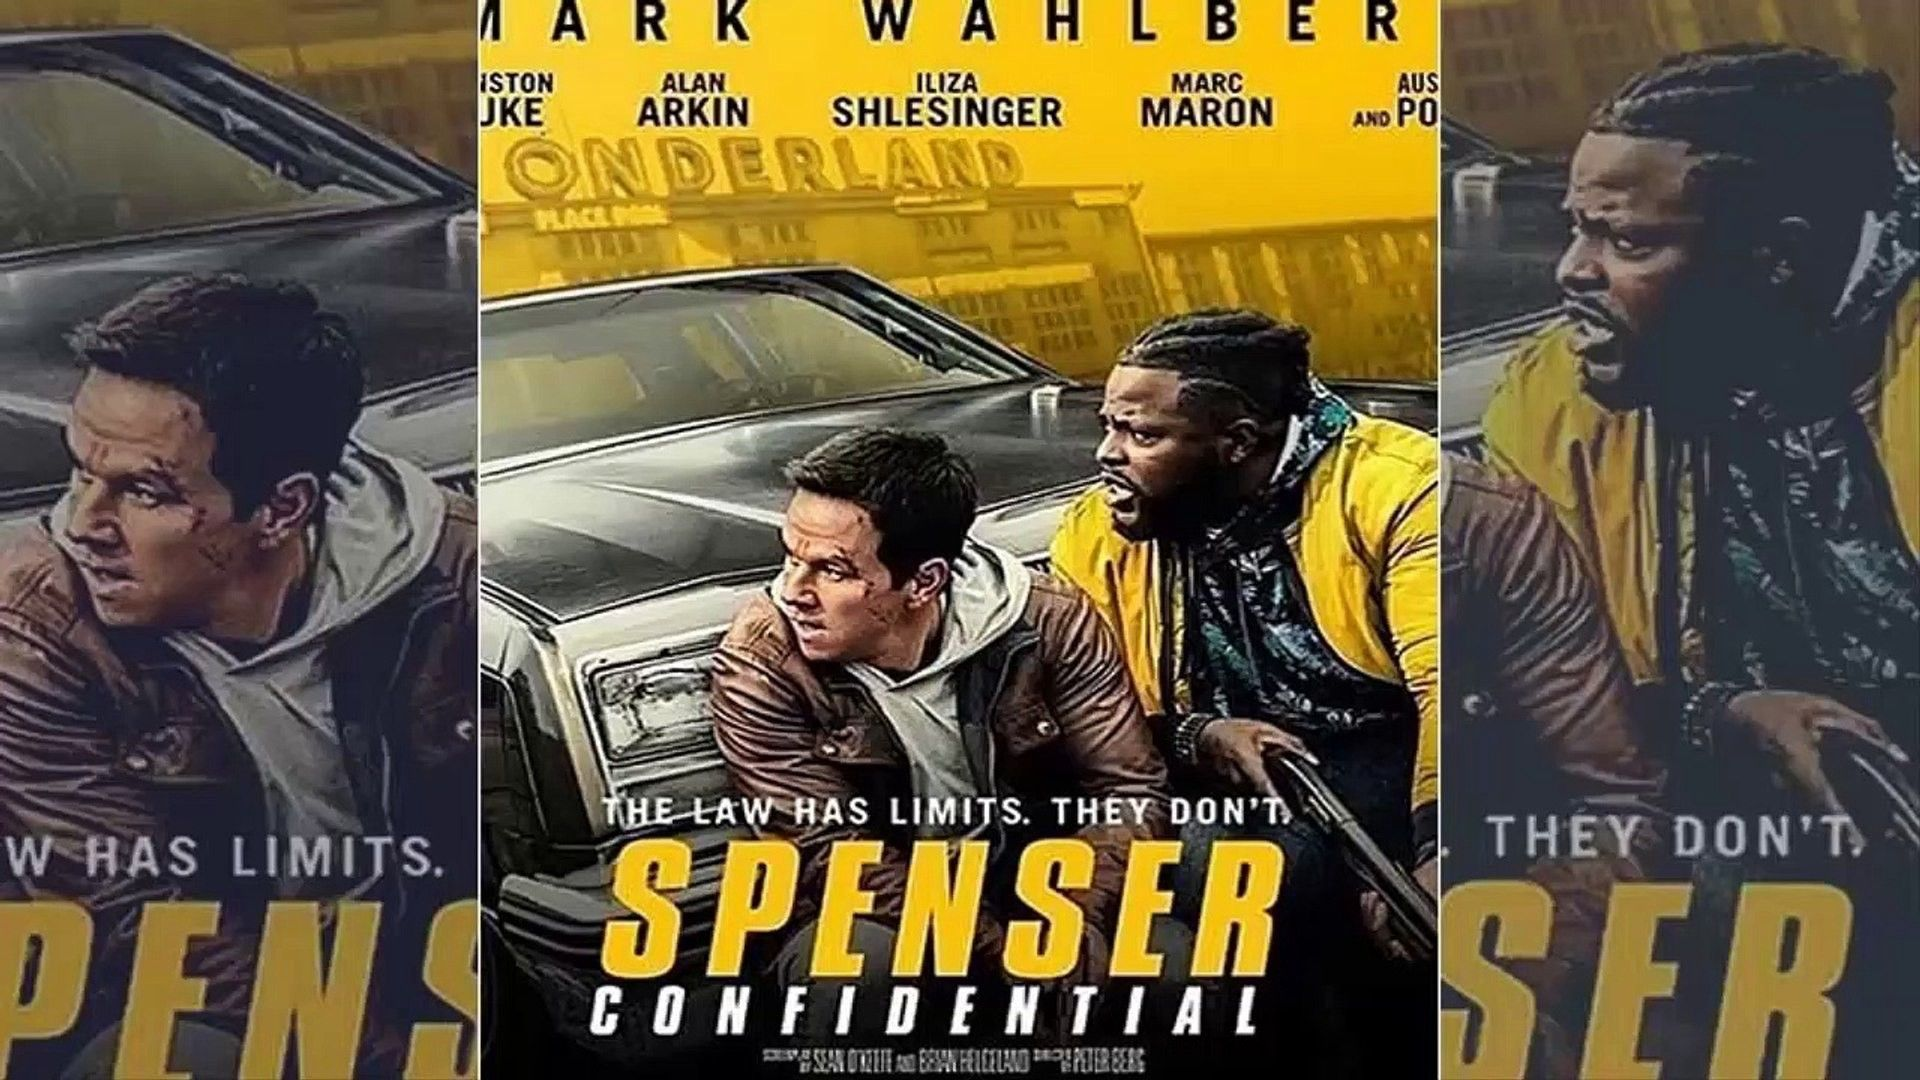 Spenser Confidential Wallpapers Top Free Spenser Confidential Backgrounds Wallpaperaccess